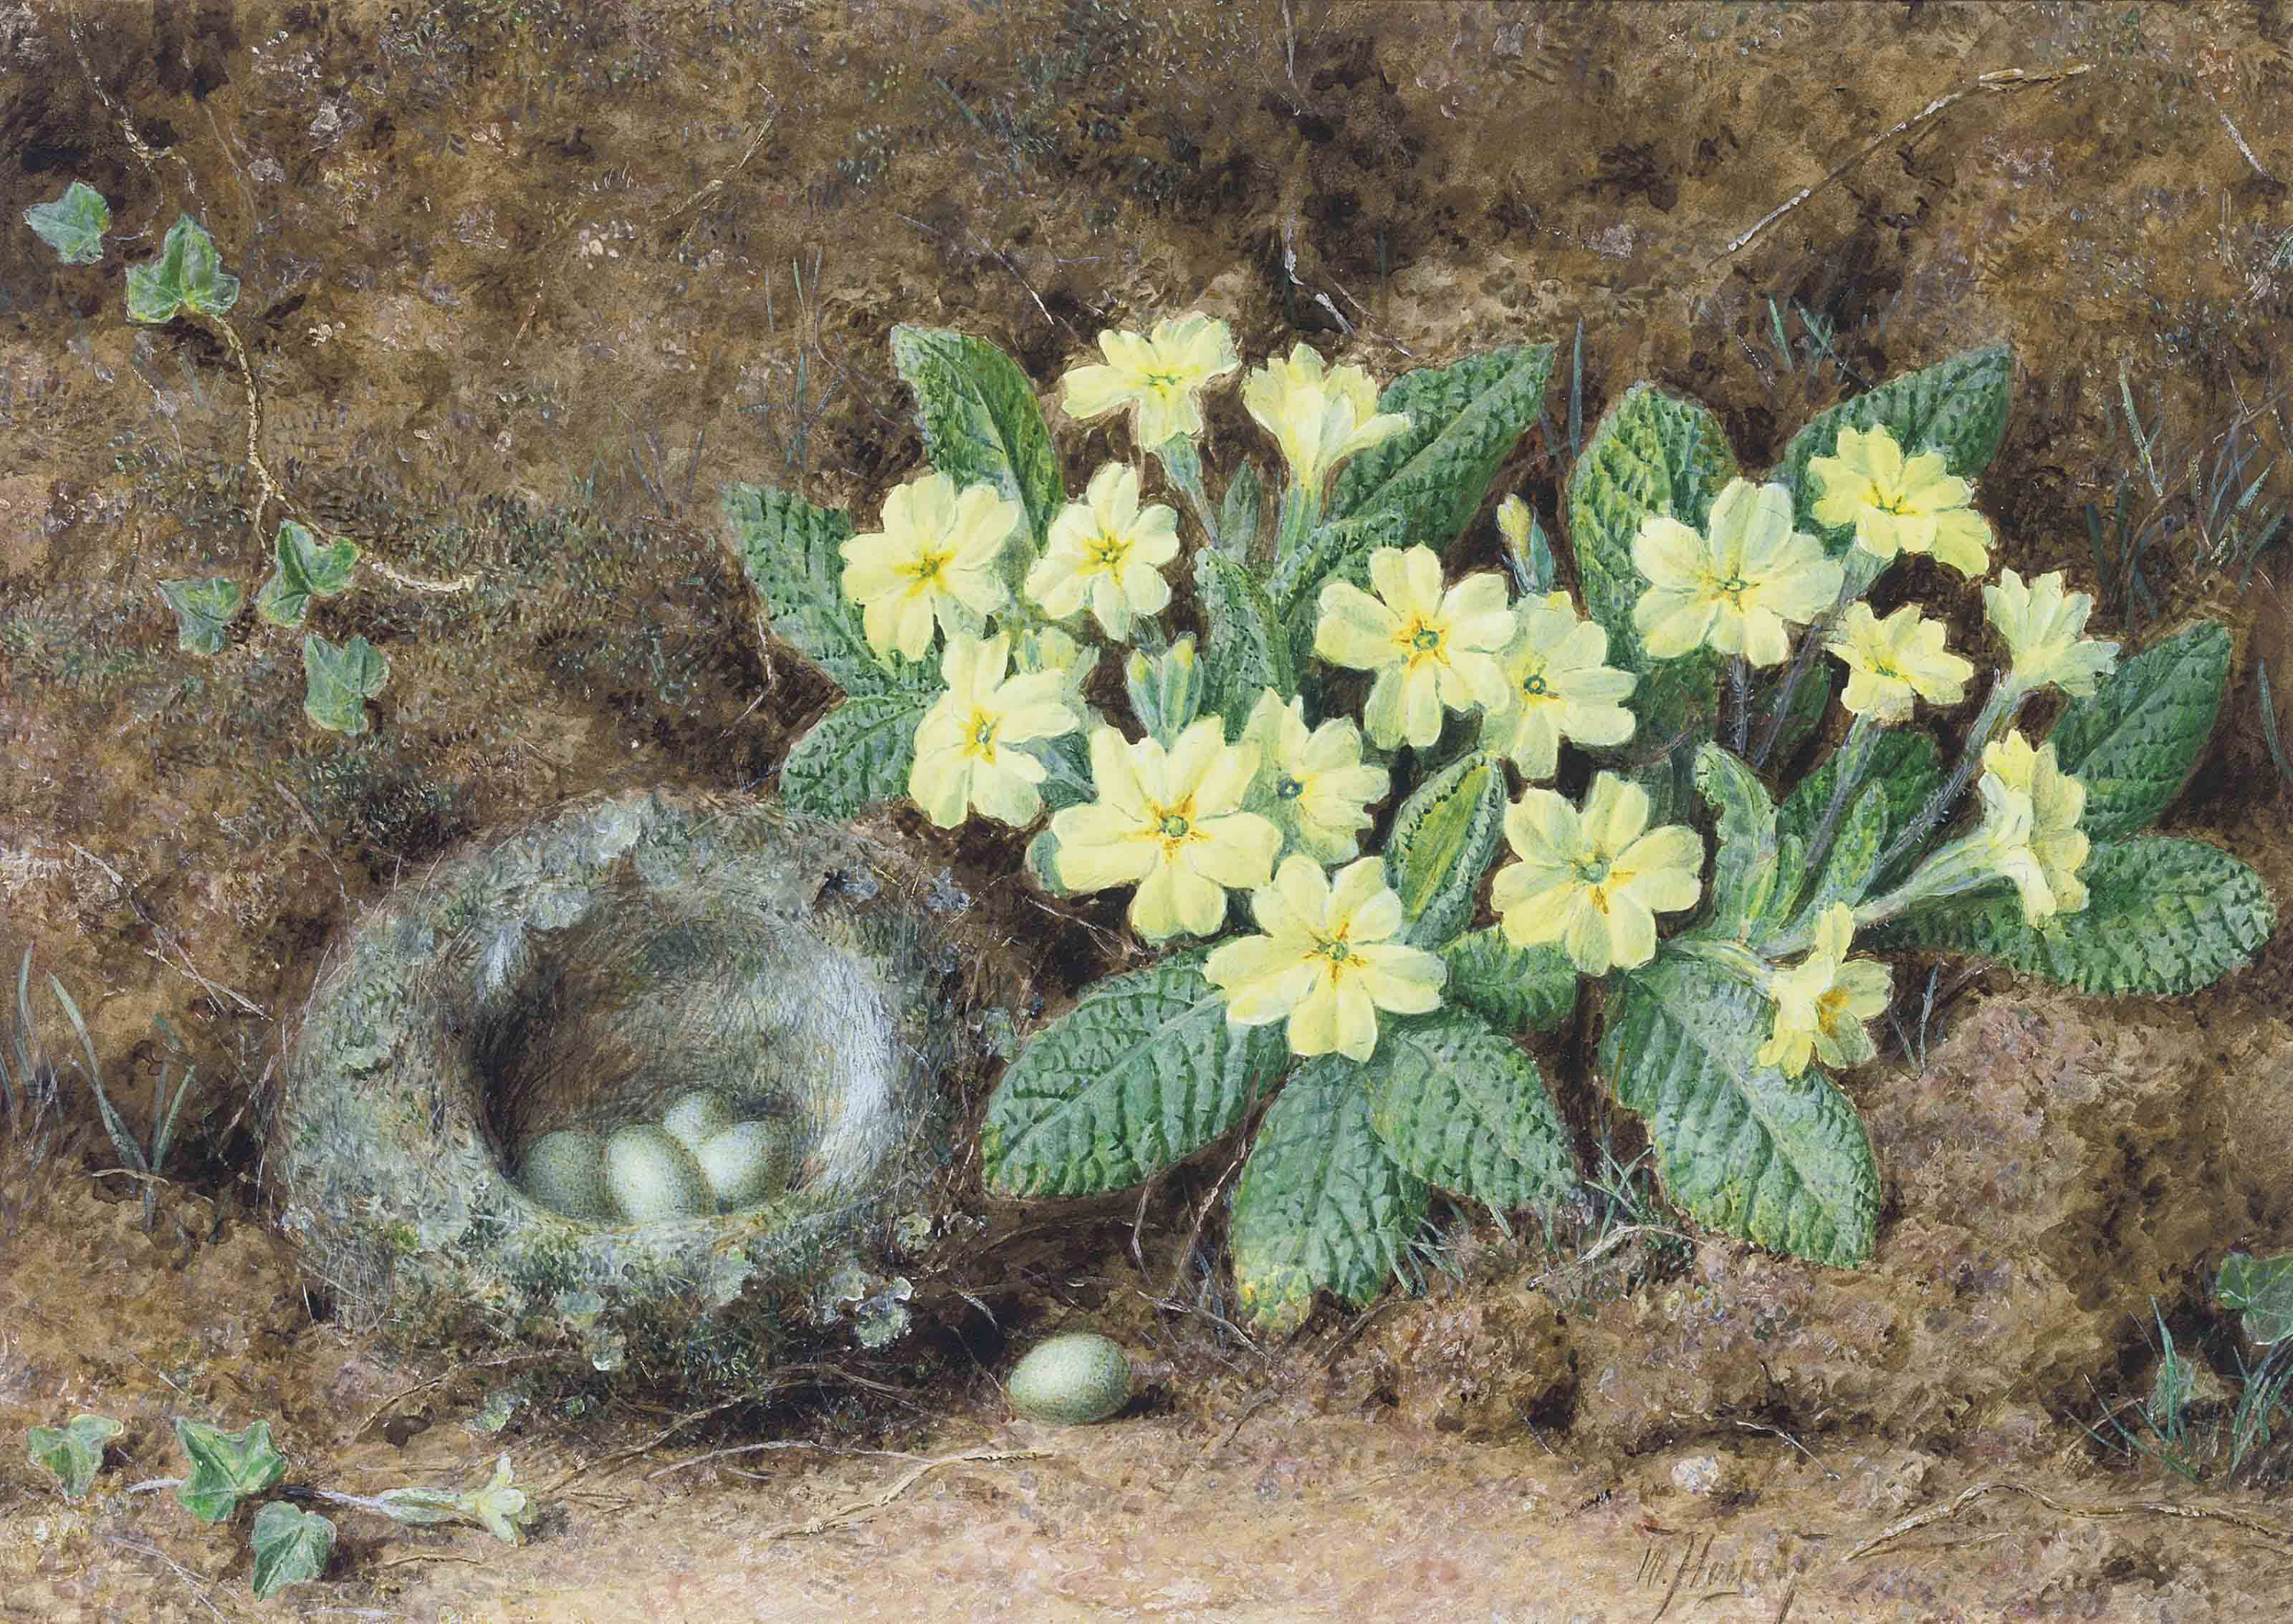 Still life of a bird's nest and primroses on a mossy bank